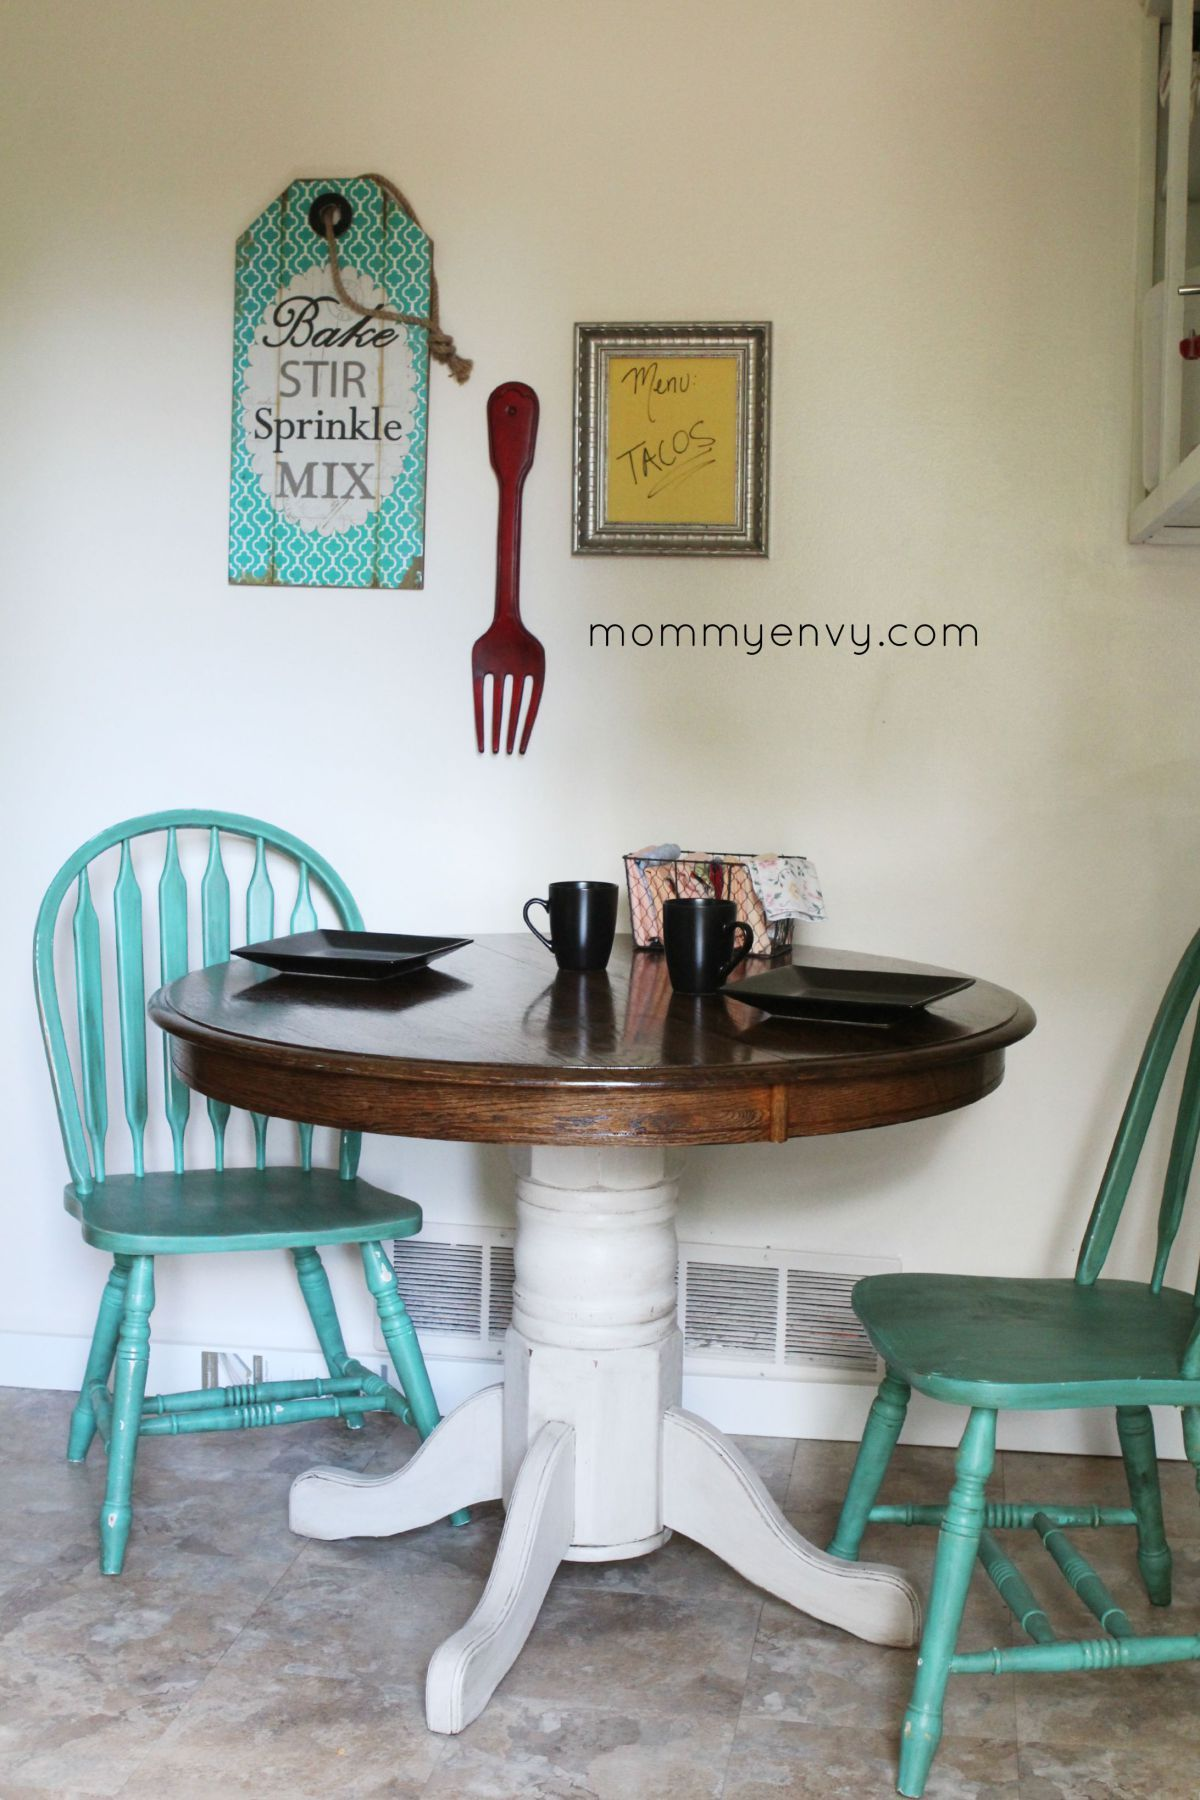 Teal Kitchen Chairs A Chalk Painted Kitchen Table Love The Teal Chairs As